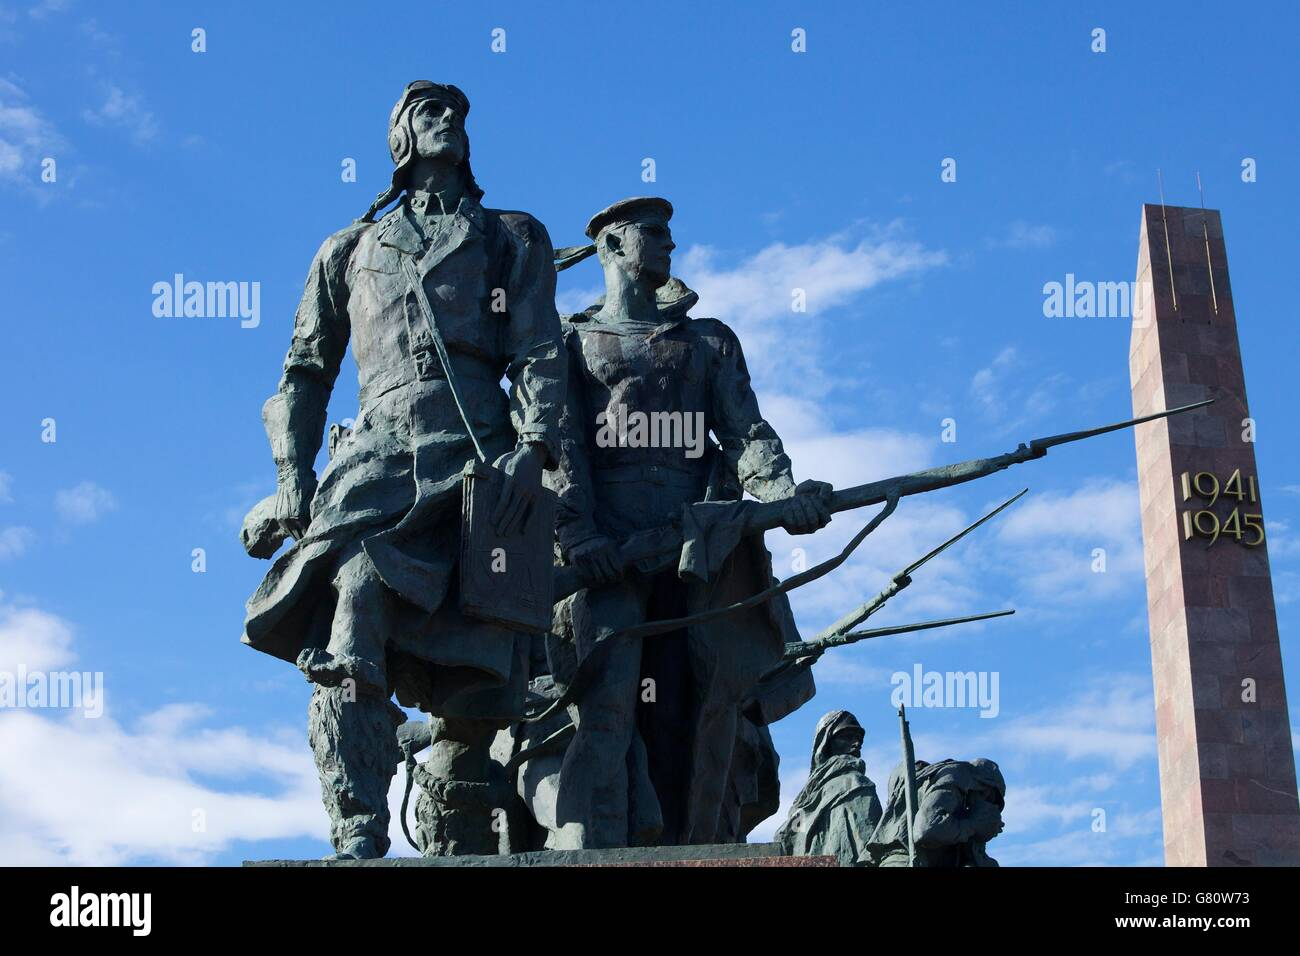 Sculpture of sailors and pilots, Monument to the Heroic Defenders of Leningrad, Victory Square, Ploshchad Pobedy, - Stock Image